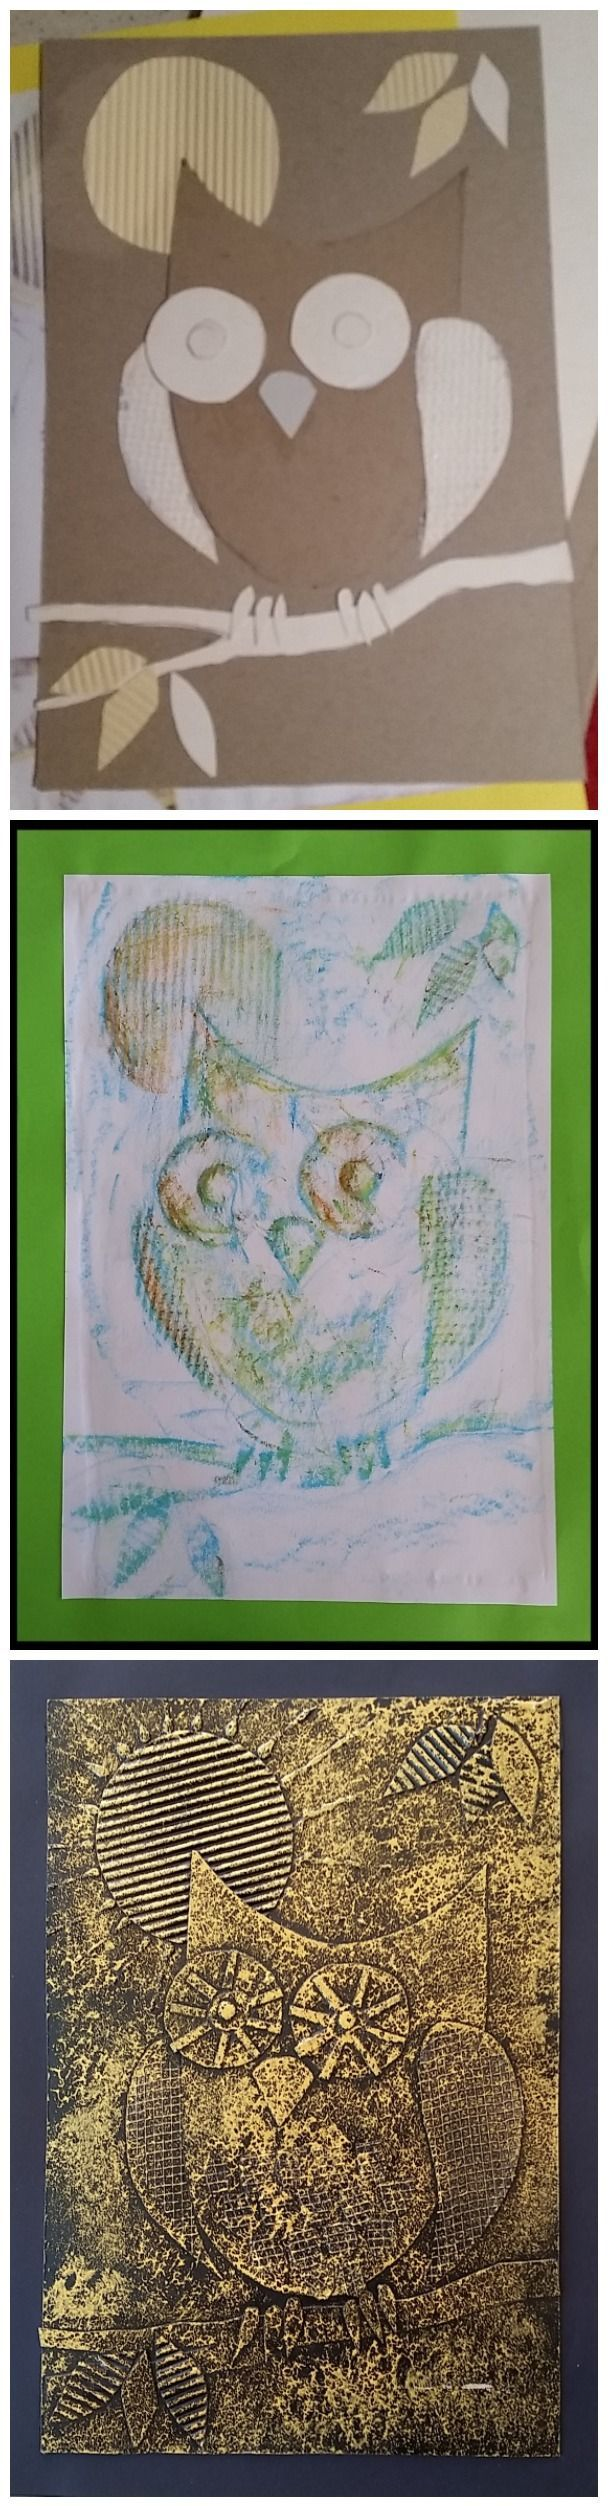 2014: Low-relief owls, oil pastel rubbings and faux-embossed metal finish.